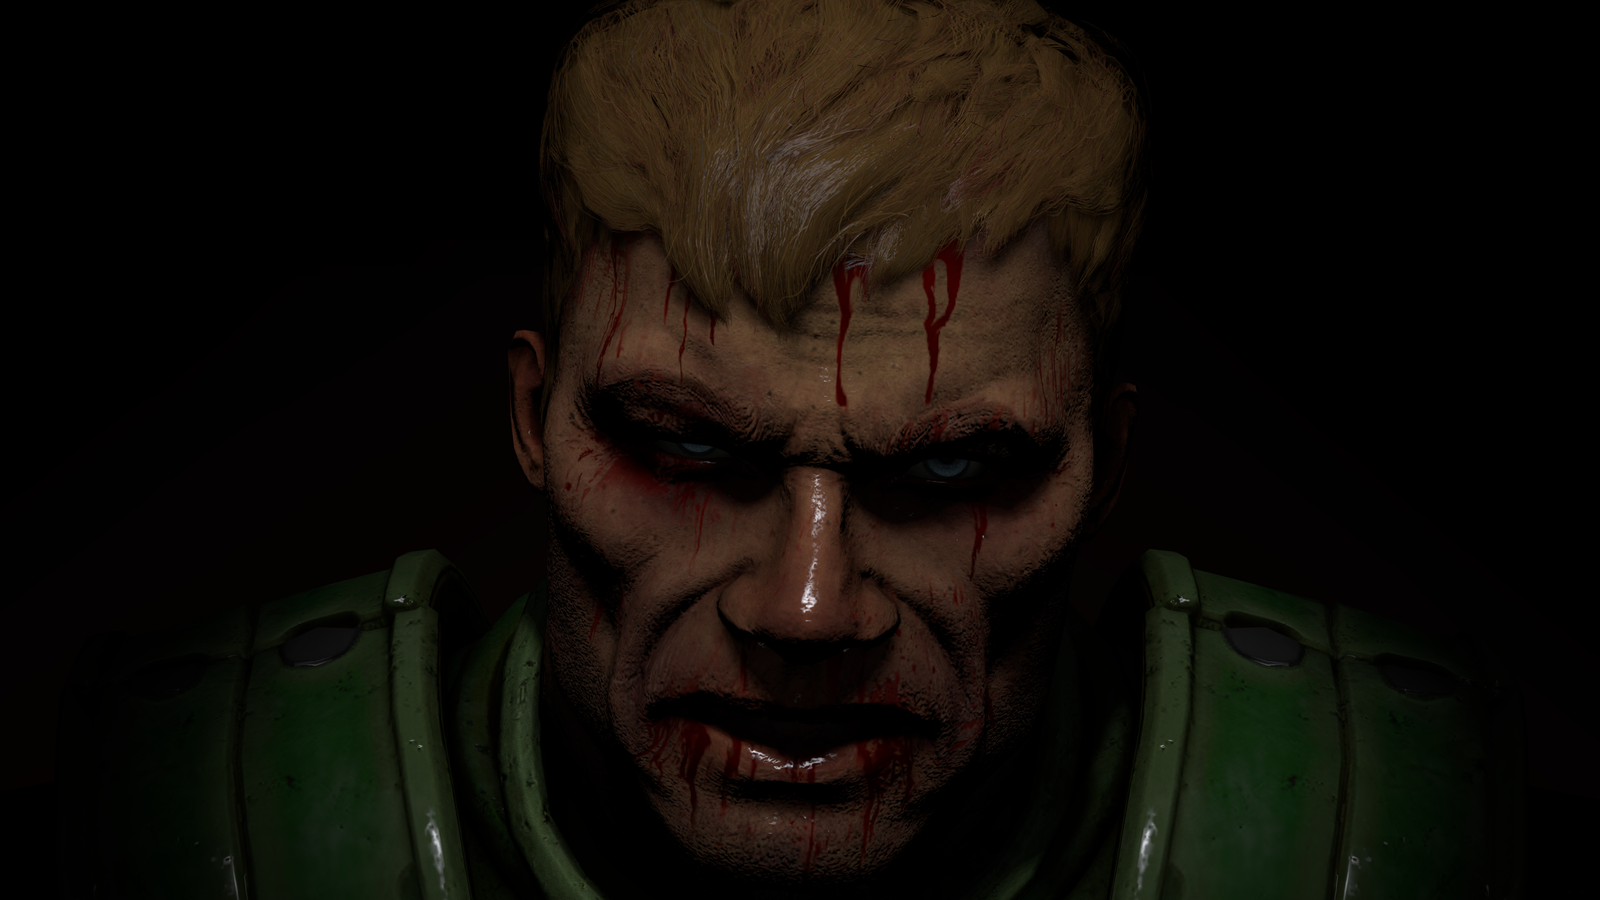 doom guy000000.png